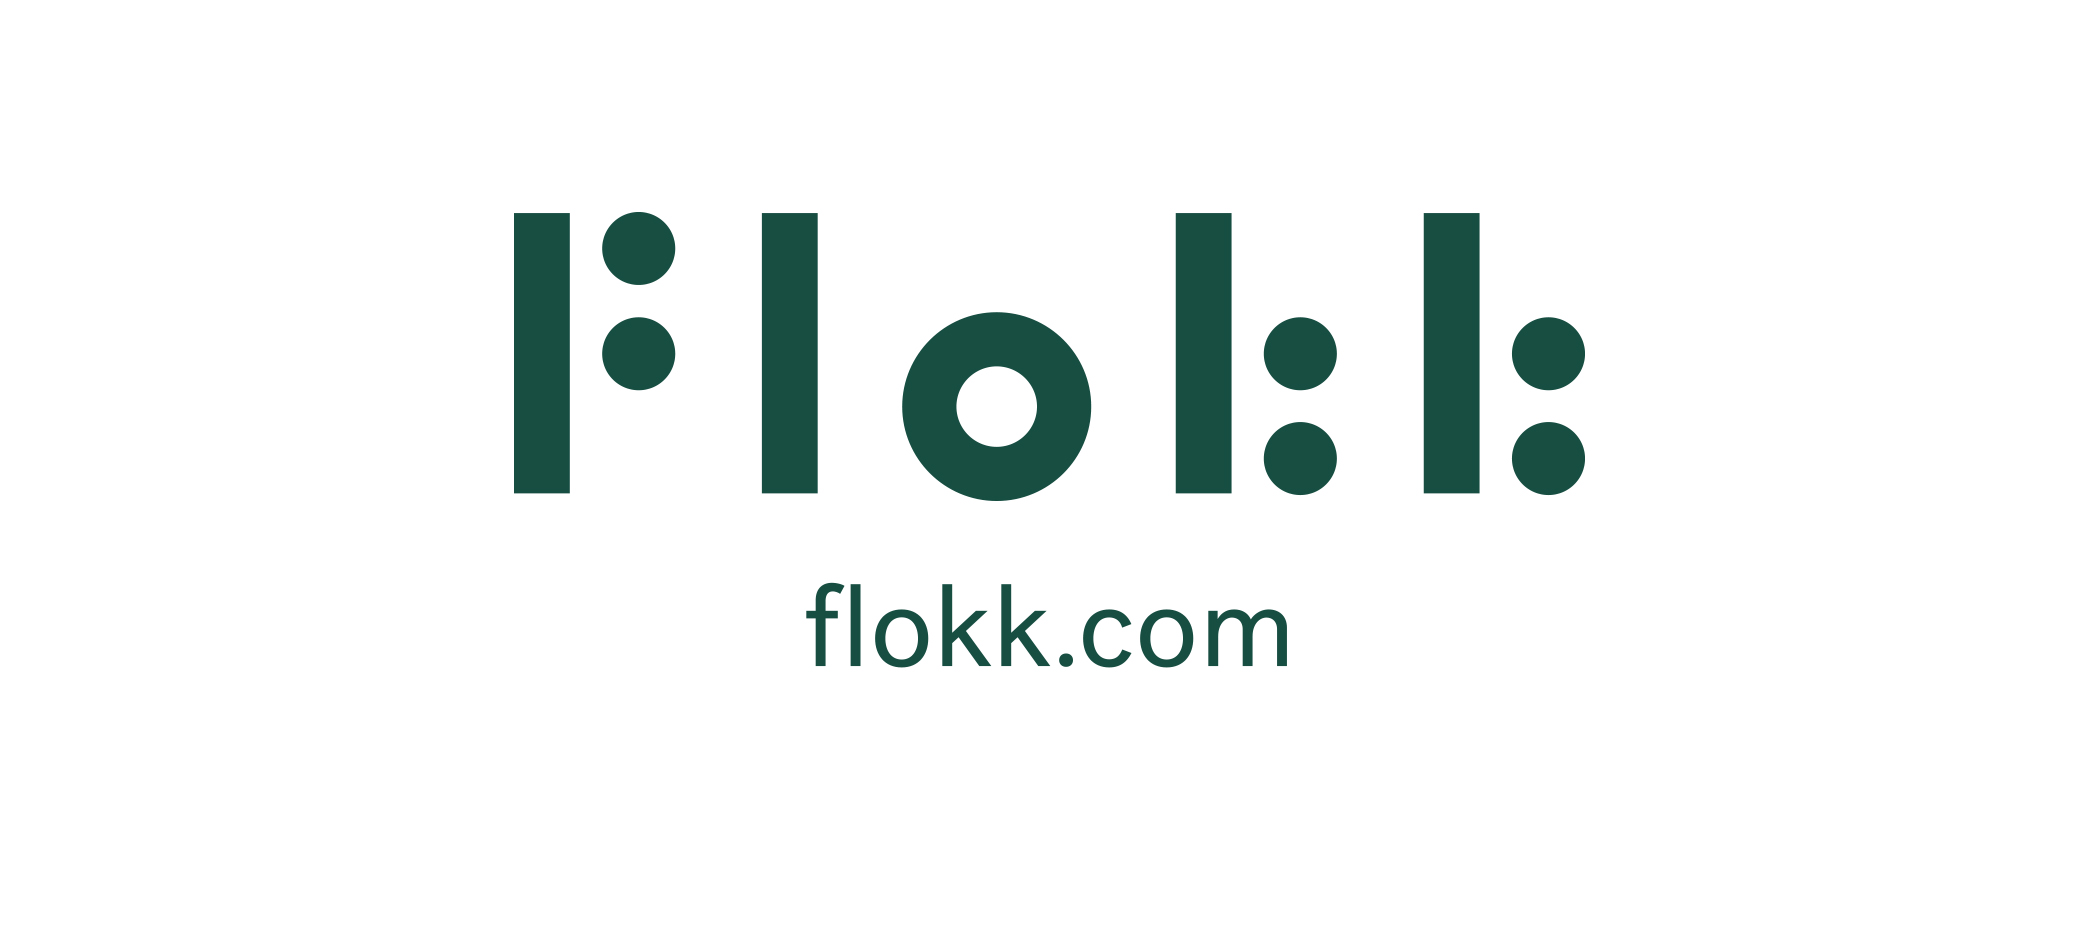 Flokk-logo_with_URL.jpg